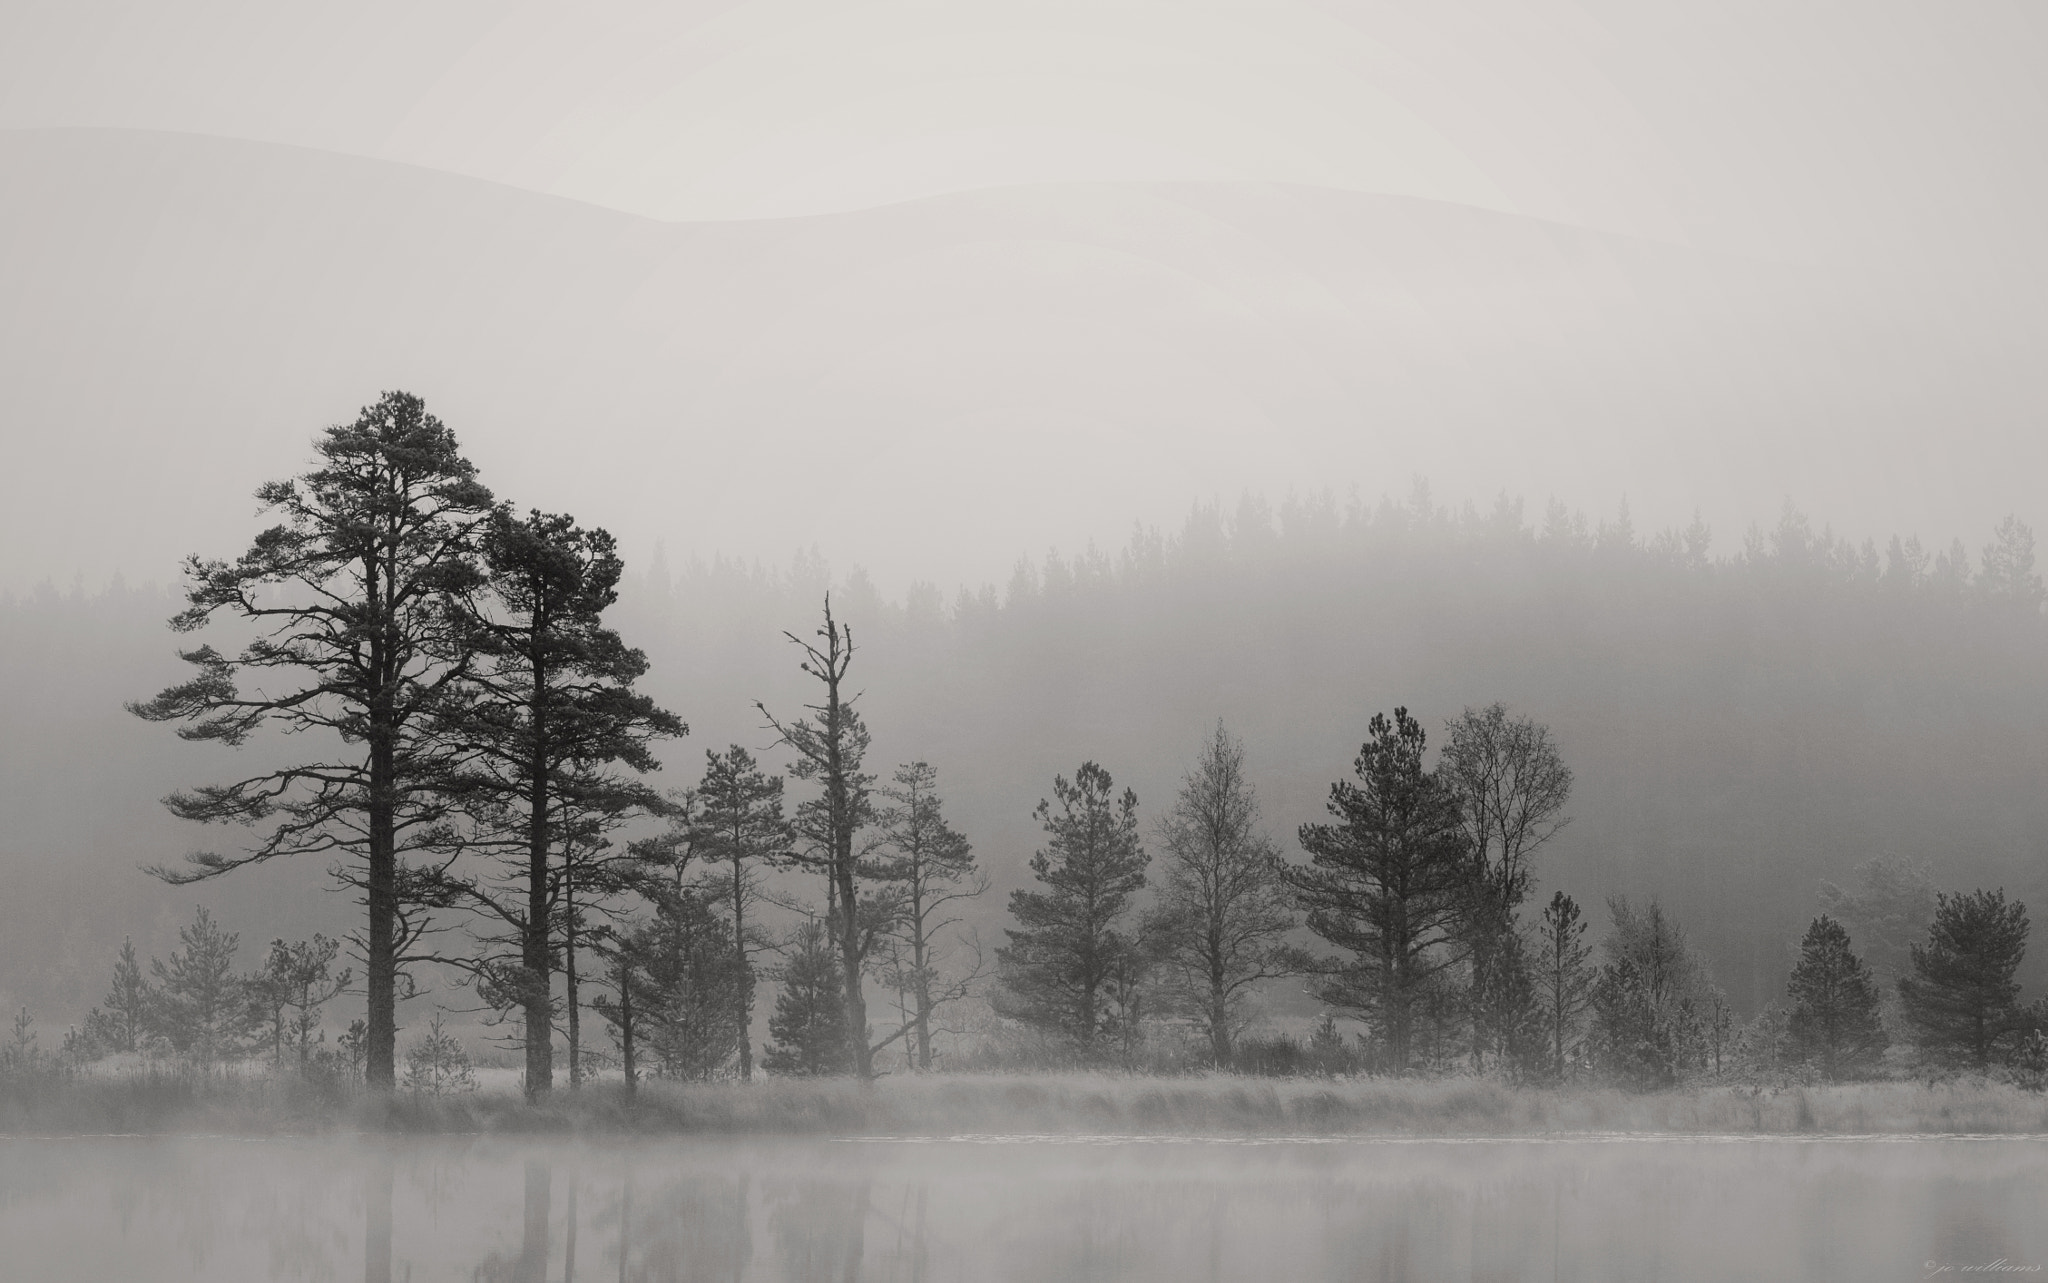 Photograph A State of Silence II by jo williams on 500px